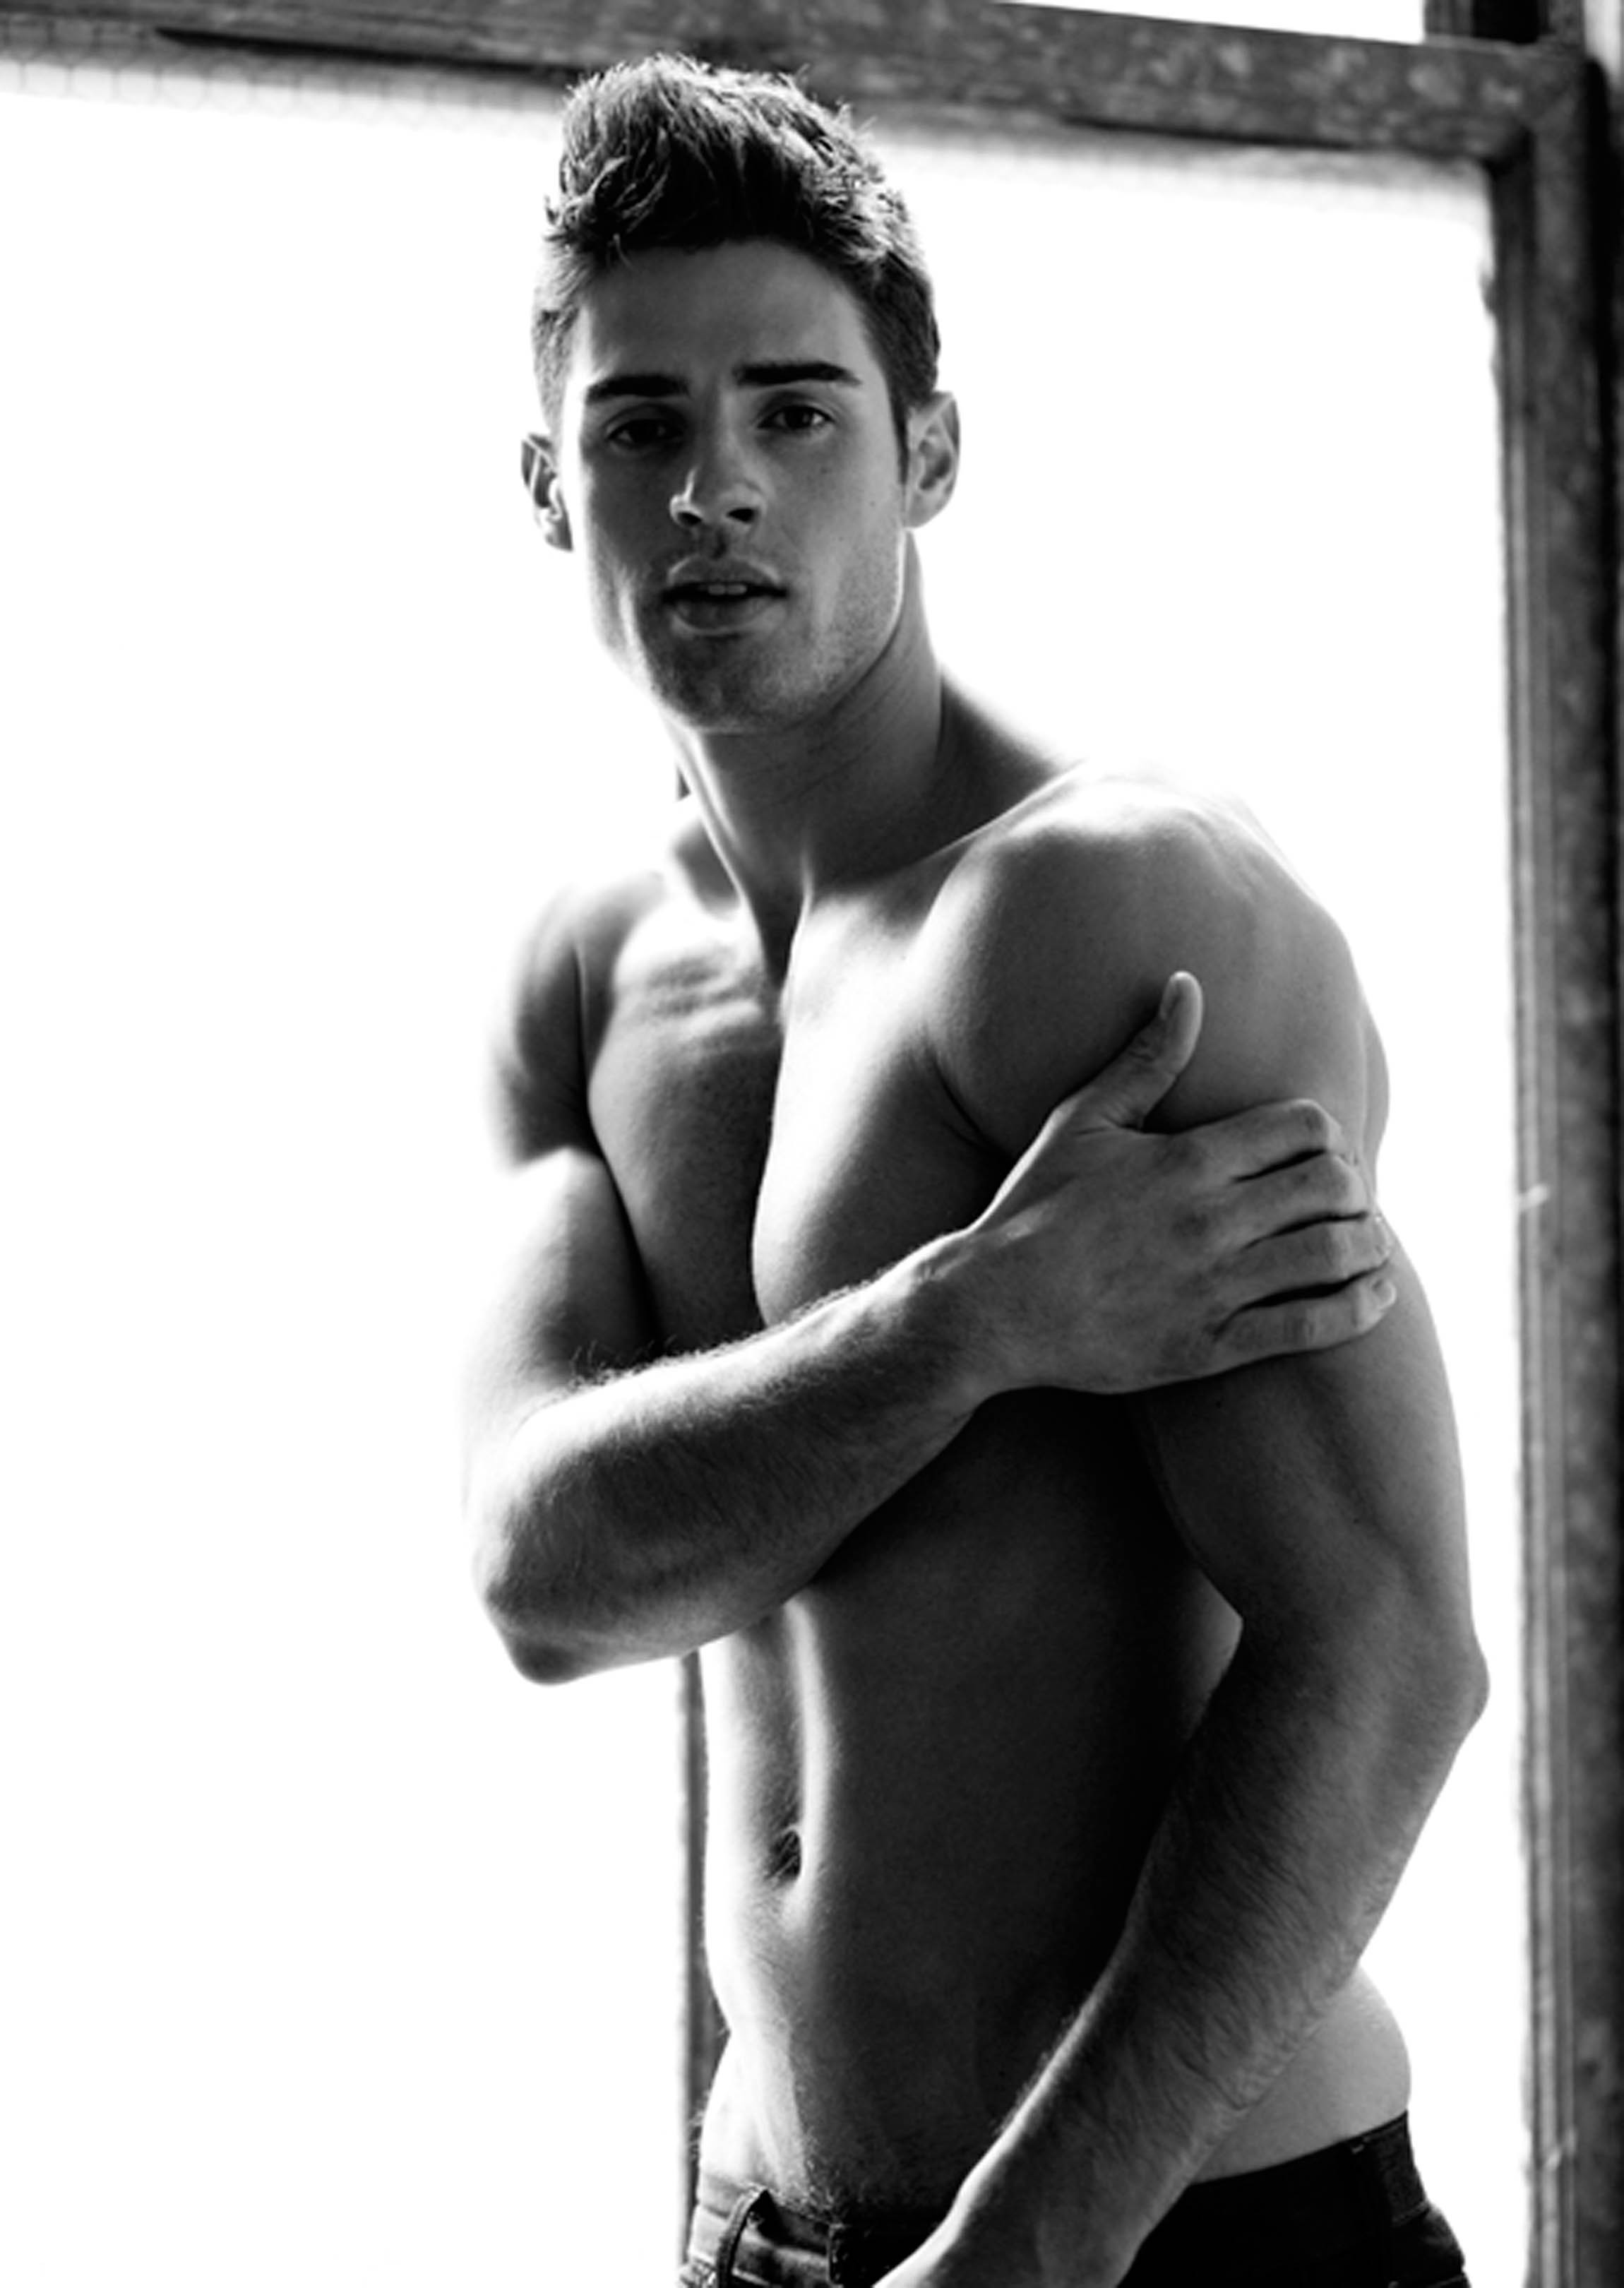 Chad White High Quality Wallpapers For Iphone